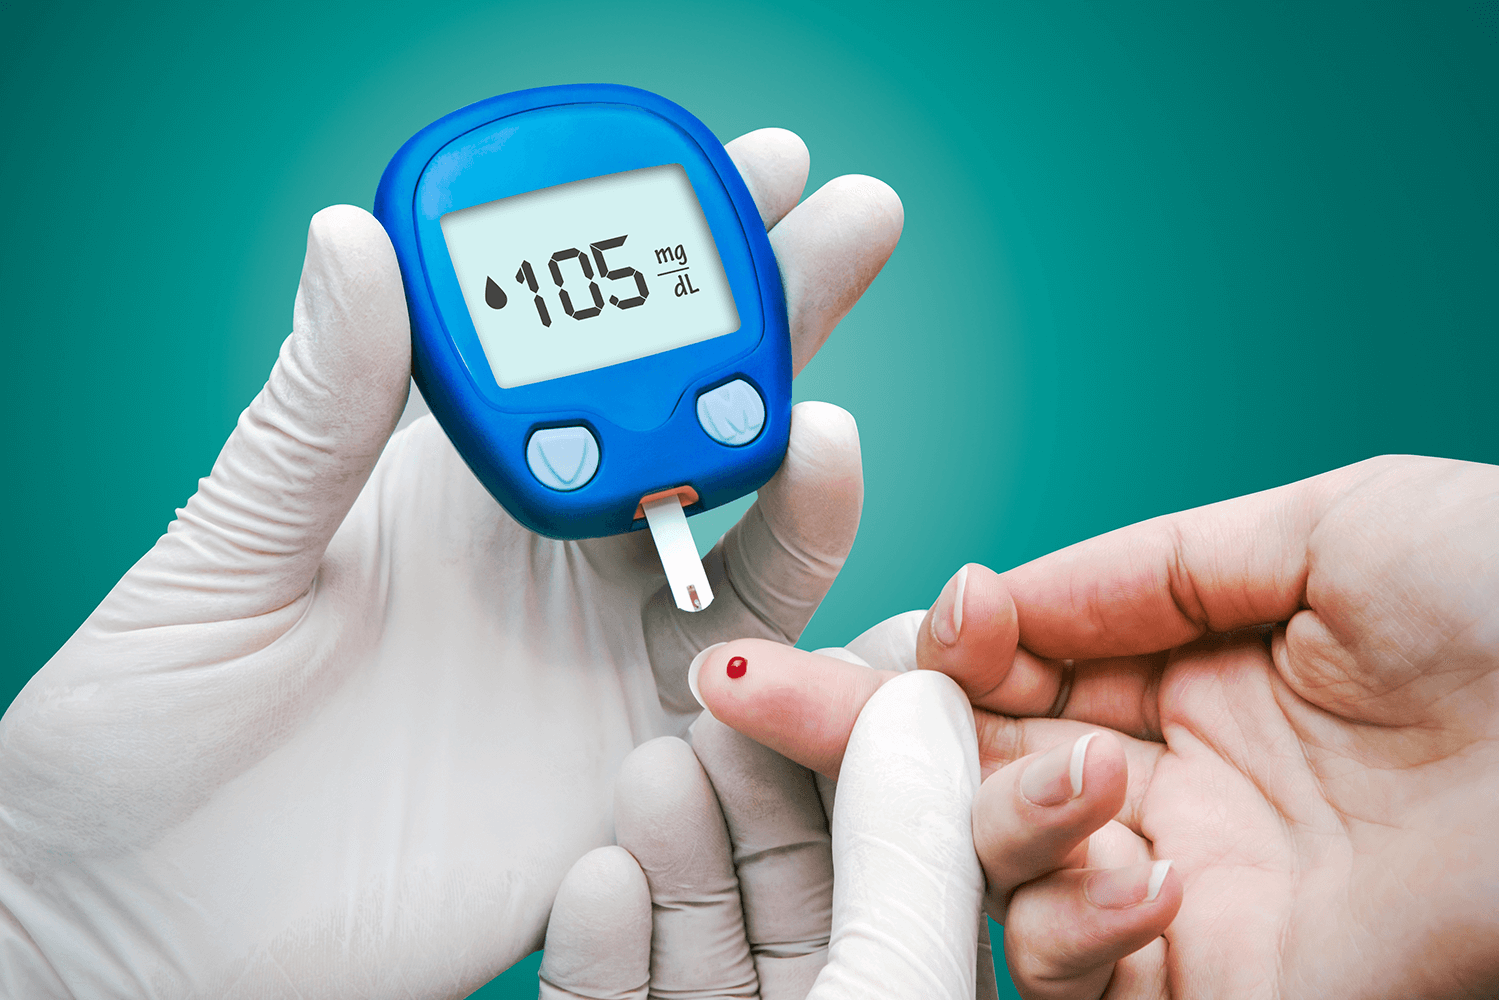 Does my blood sugar levels (Hba1c/Mmol) affect life insurance?